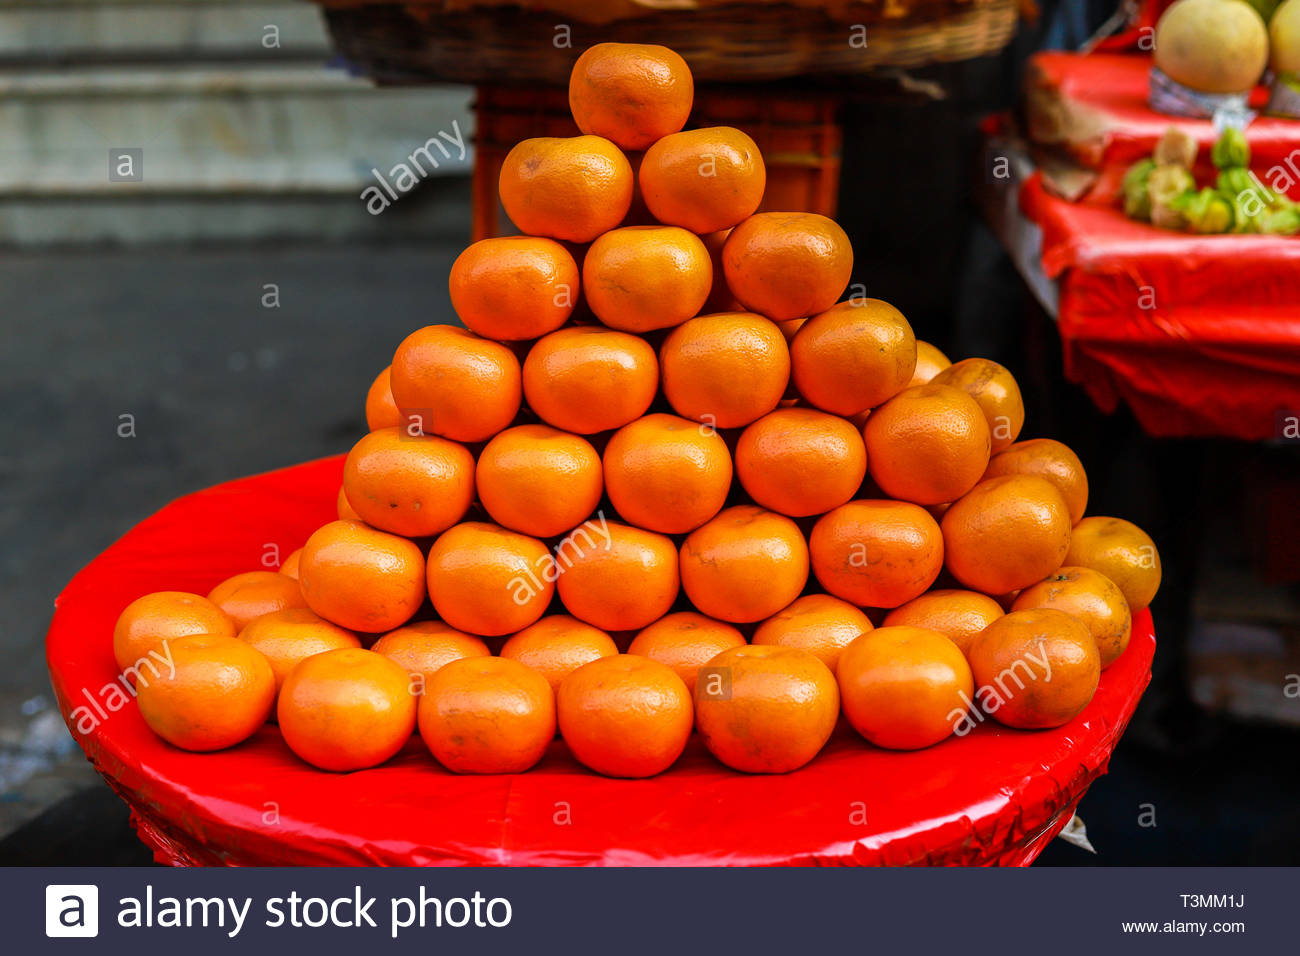 A background of fresh oranges on a market - Stock Image